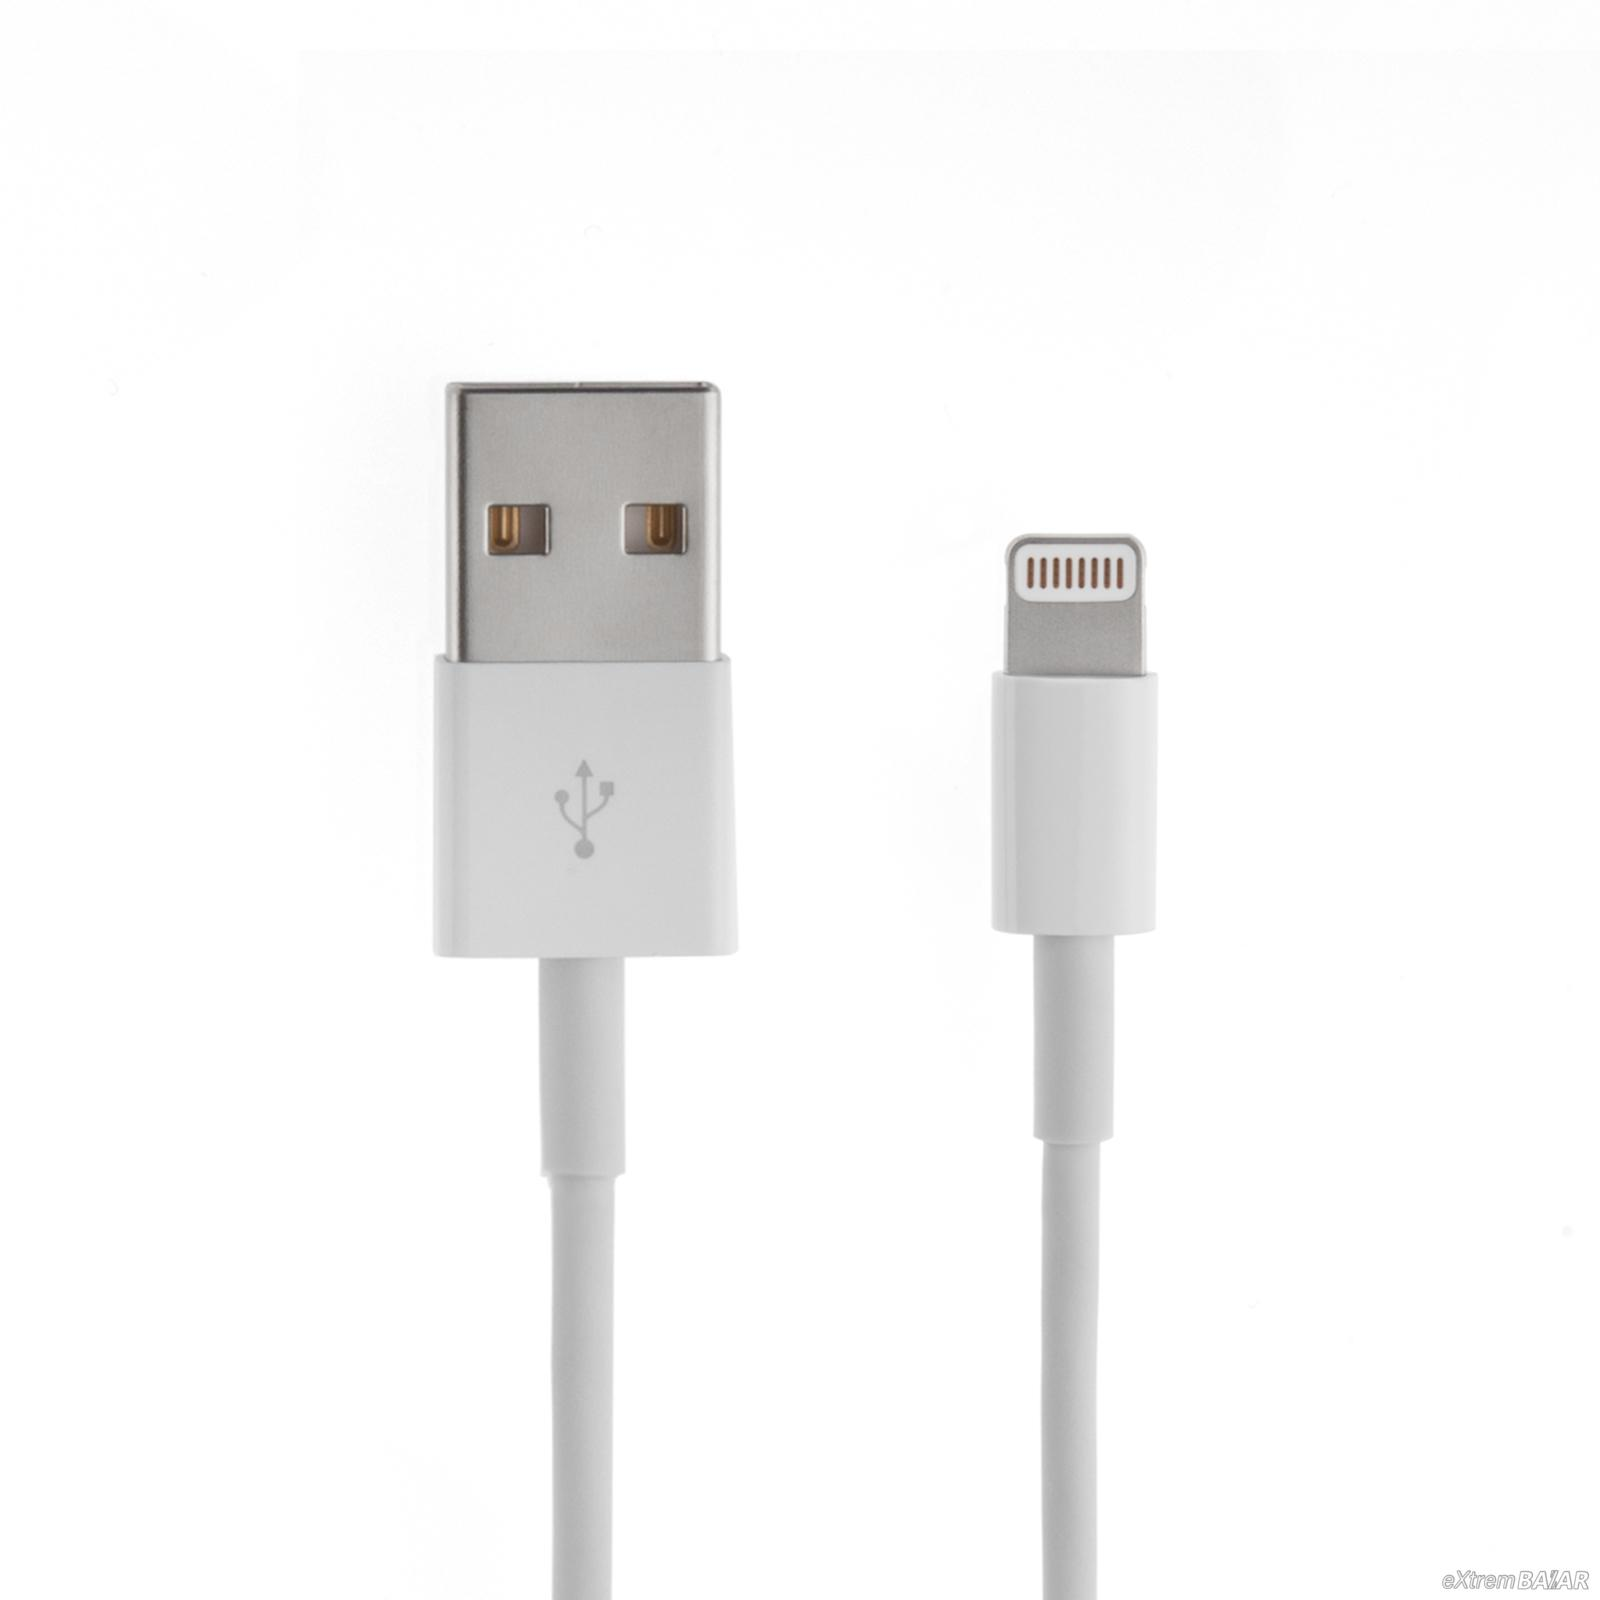 USB DATA CABLE FOR iPHONE 6S/ 6G/ 5S/ 5G (1METER)